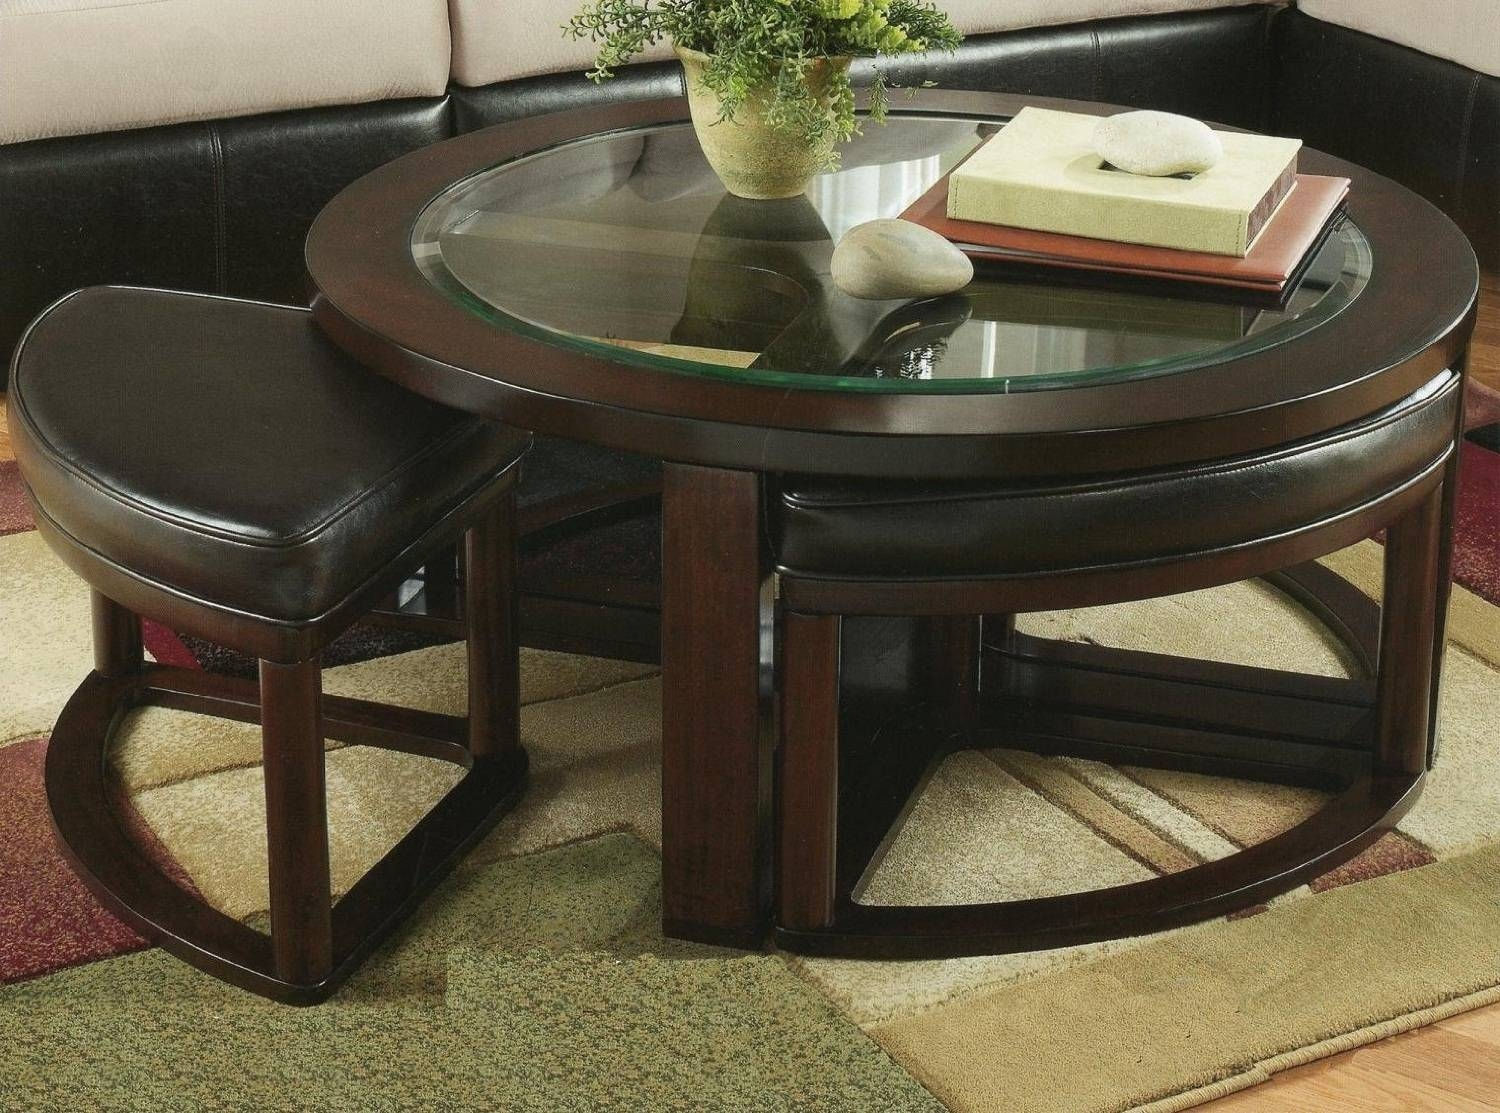 Round Glass Coffee Table With Stools | Roselawnlutheran pertaining to Solid Round Coffee Tables (Image 24 of 30)